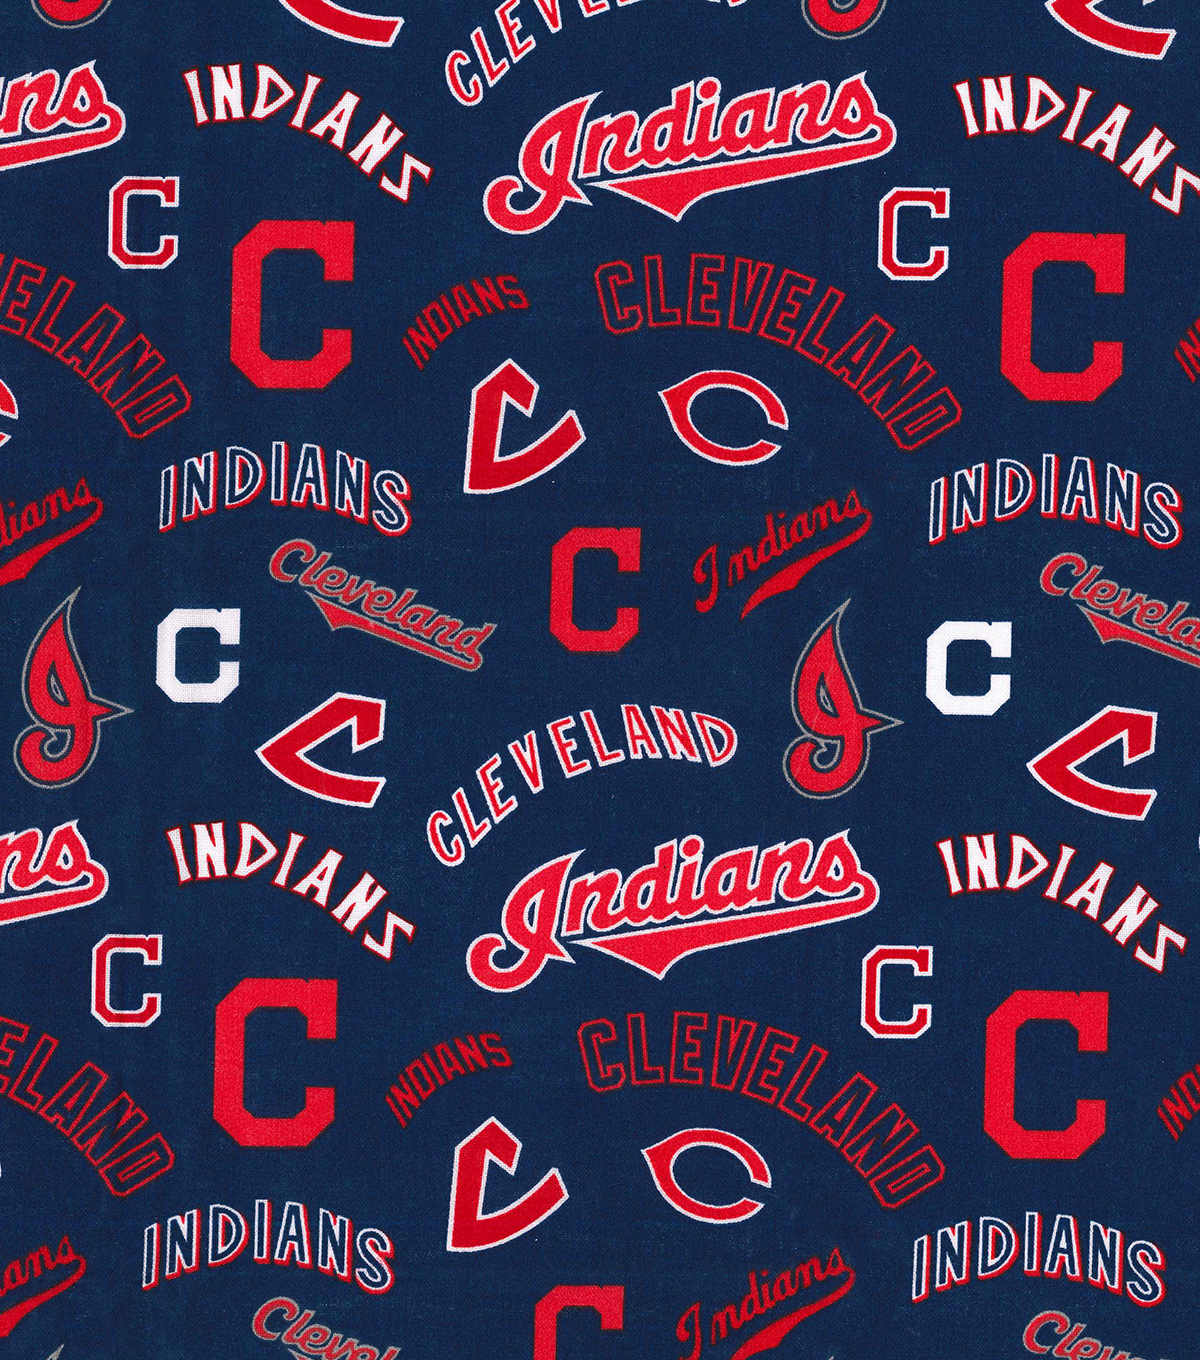 Cooperstown Cleveland Indians Cotton Fabric